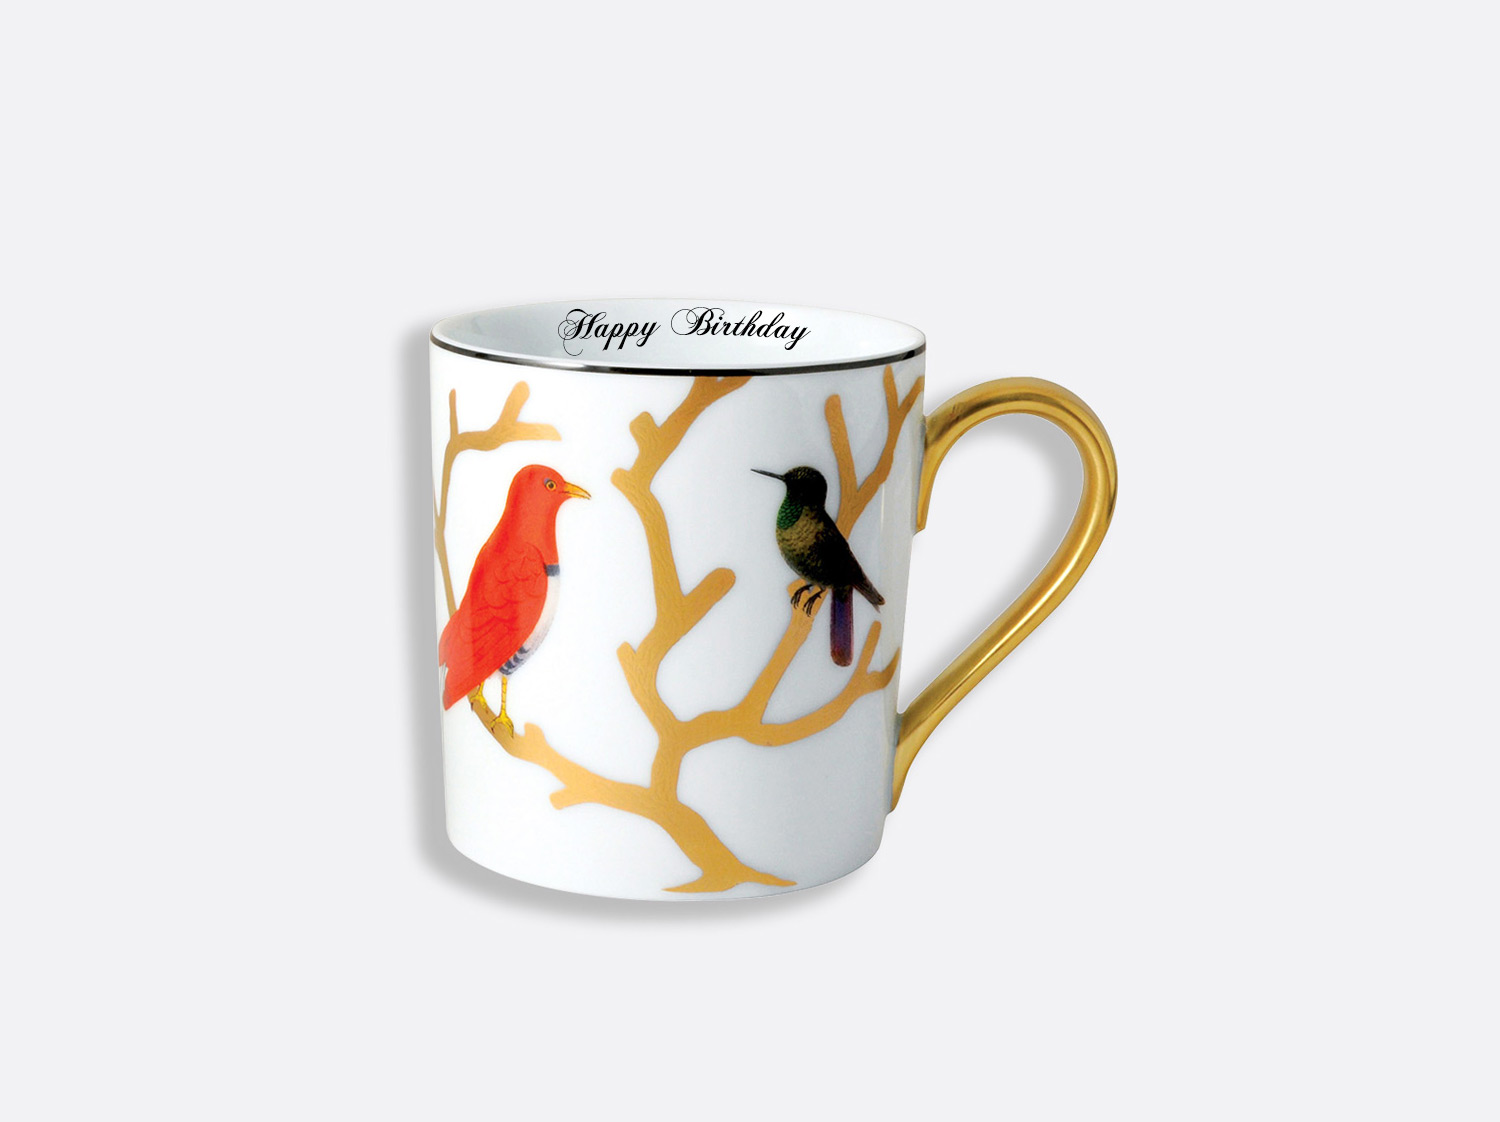 China Mug of the collection Aux oiseaux - Personnalisation | Bernardaud